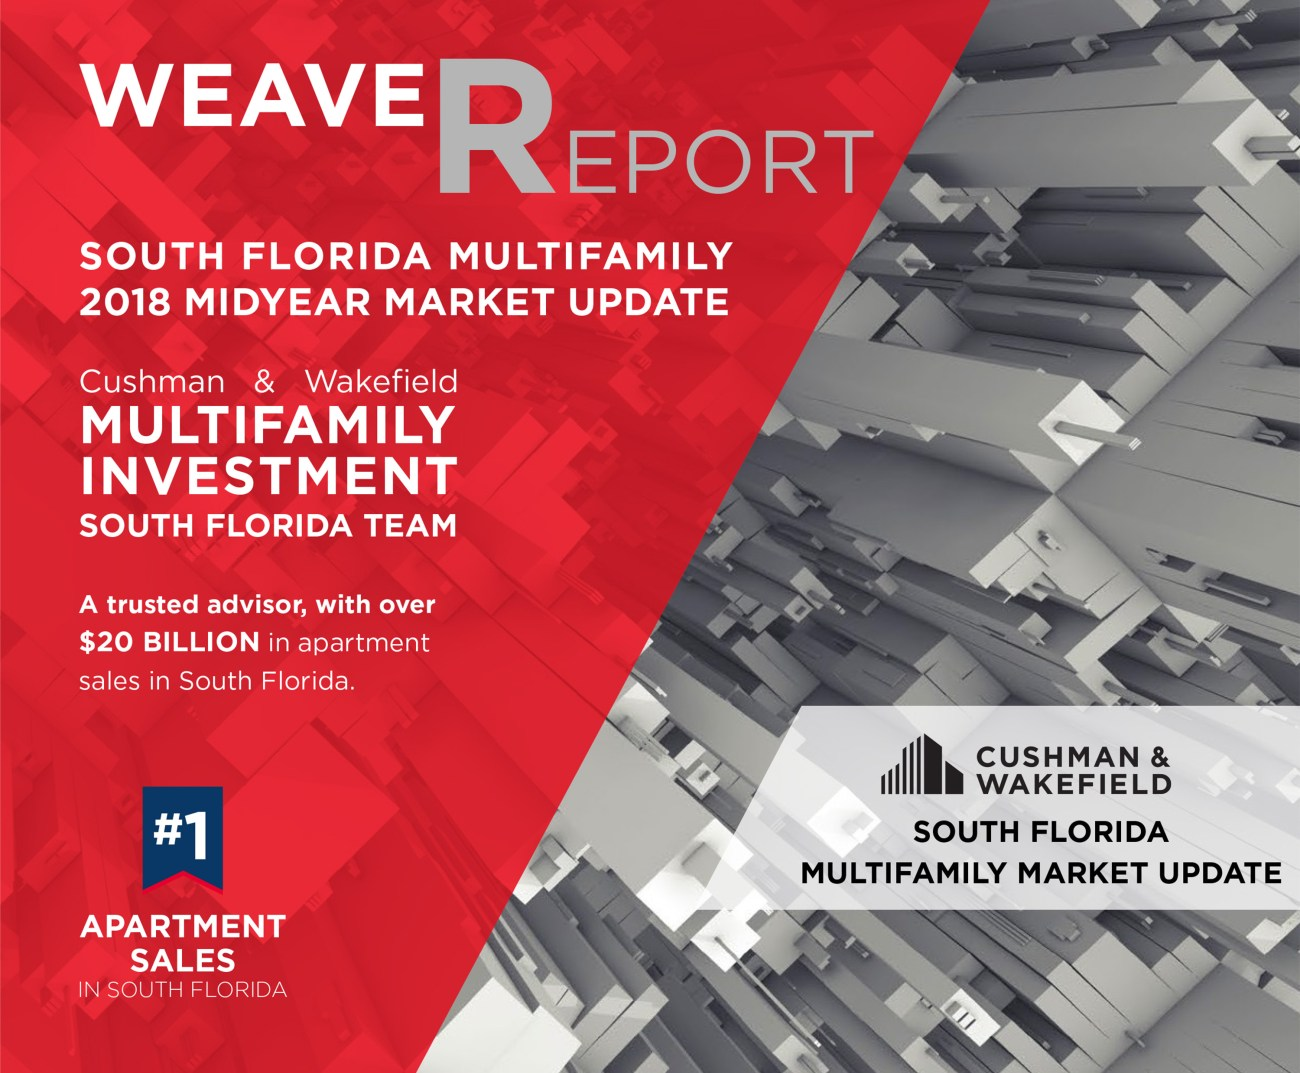 Cushman & Wakefield Report: Record Low Vacancies Highlight Bullish South Florida Multifamily Market